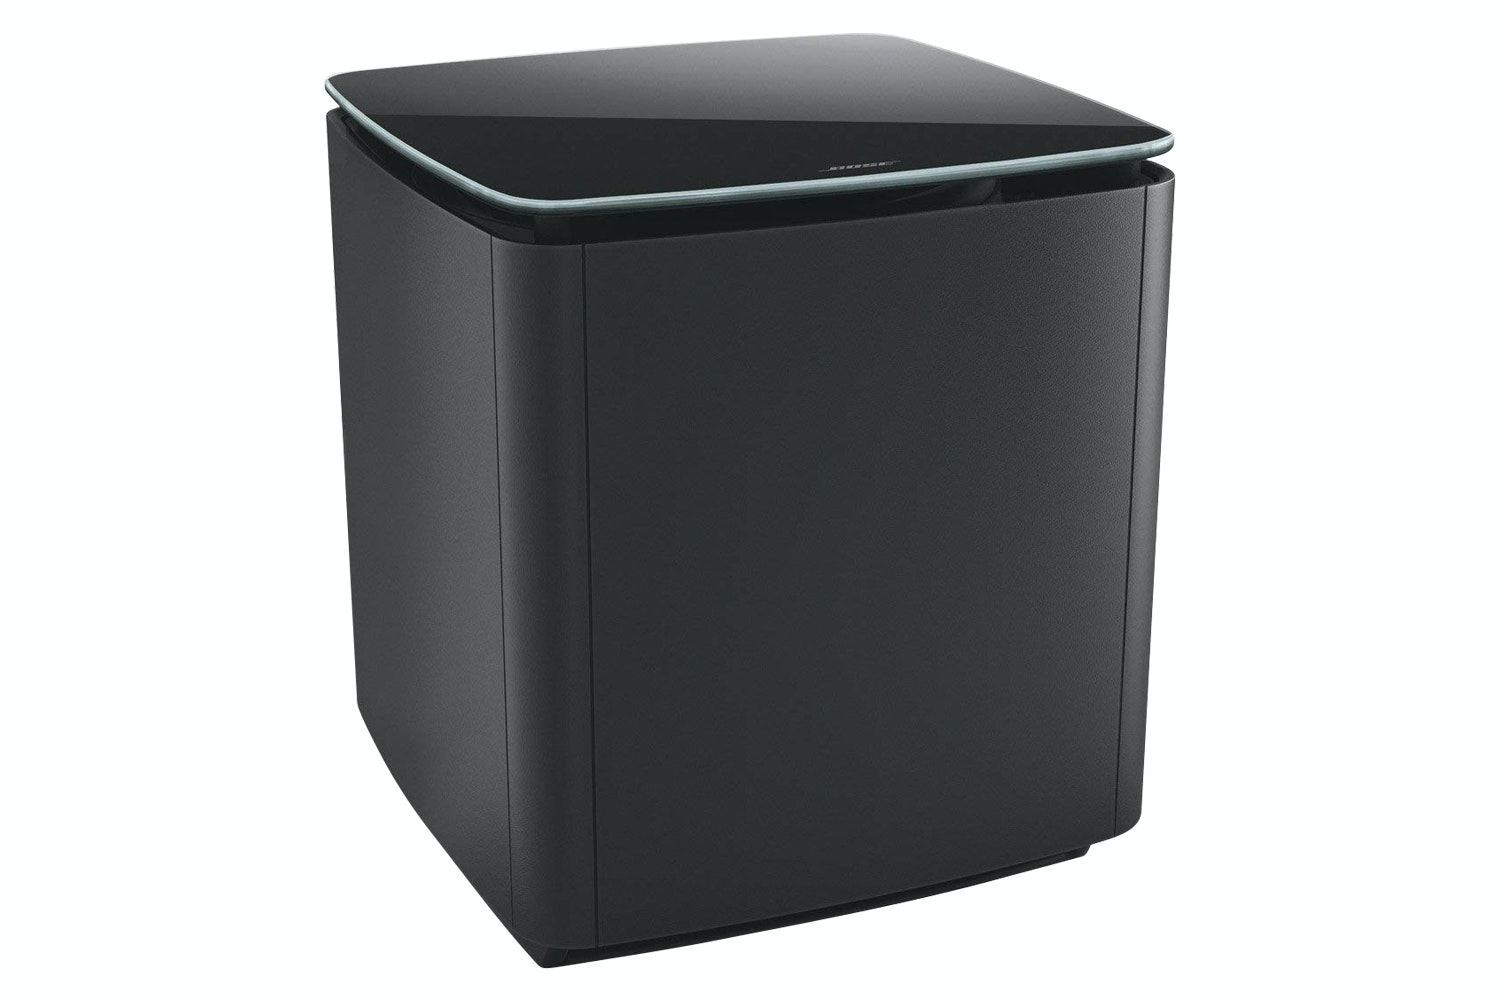 Bose Bass 700 Module Wireless Speaker | Black